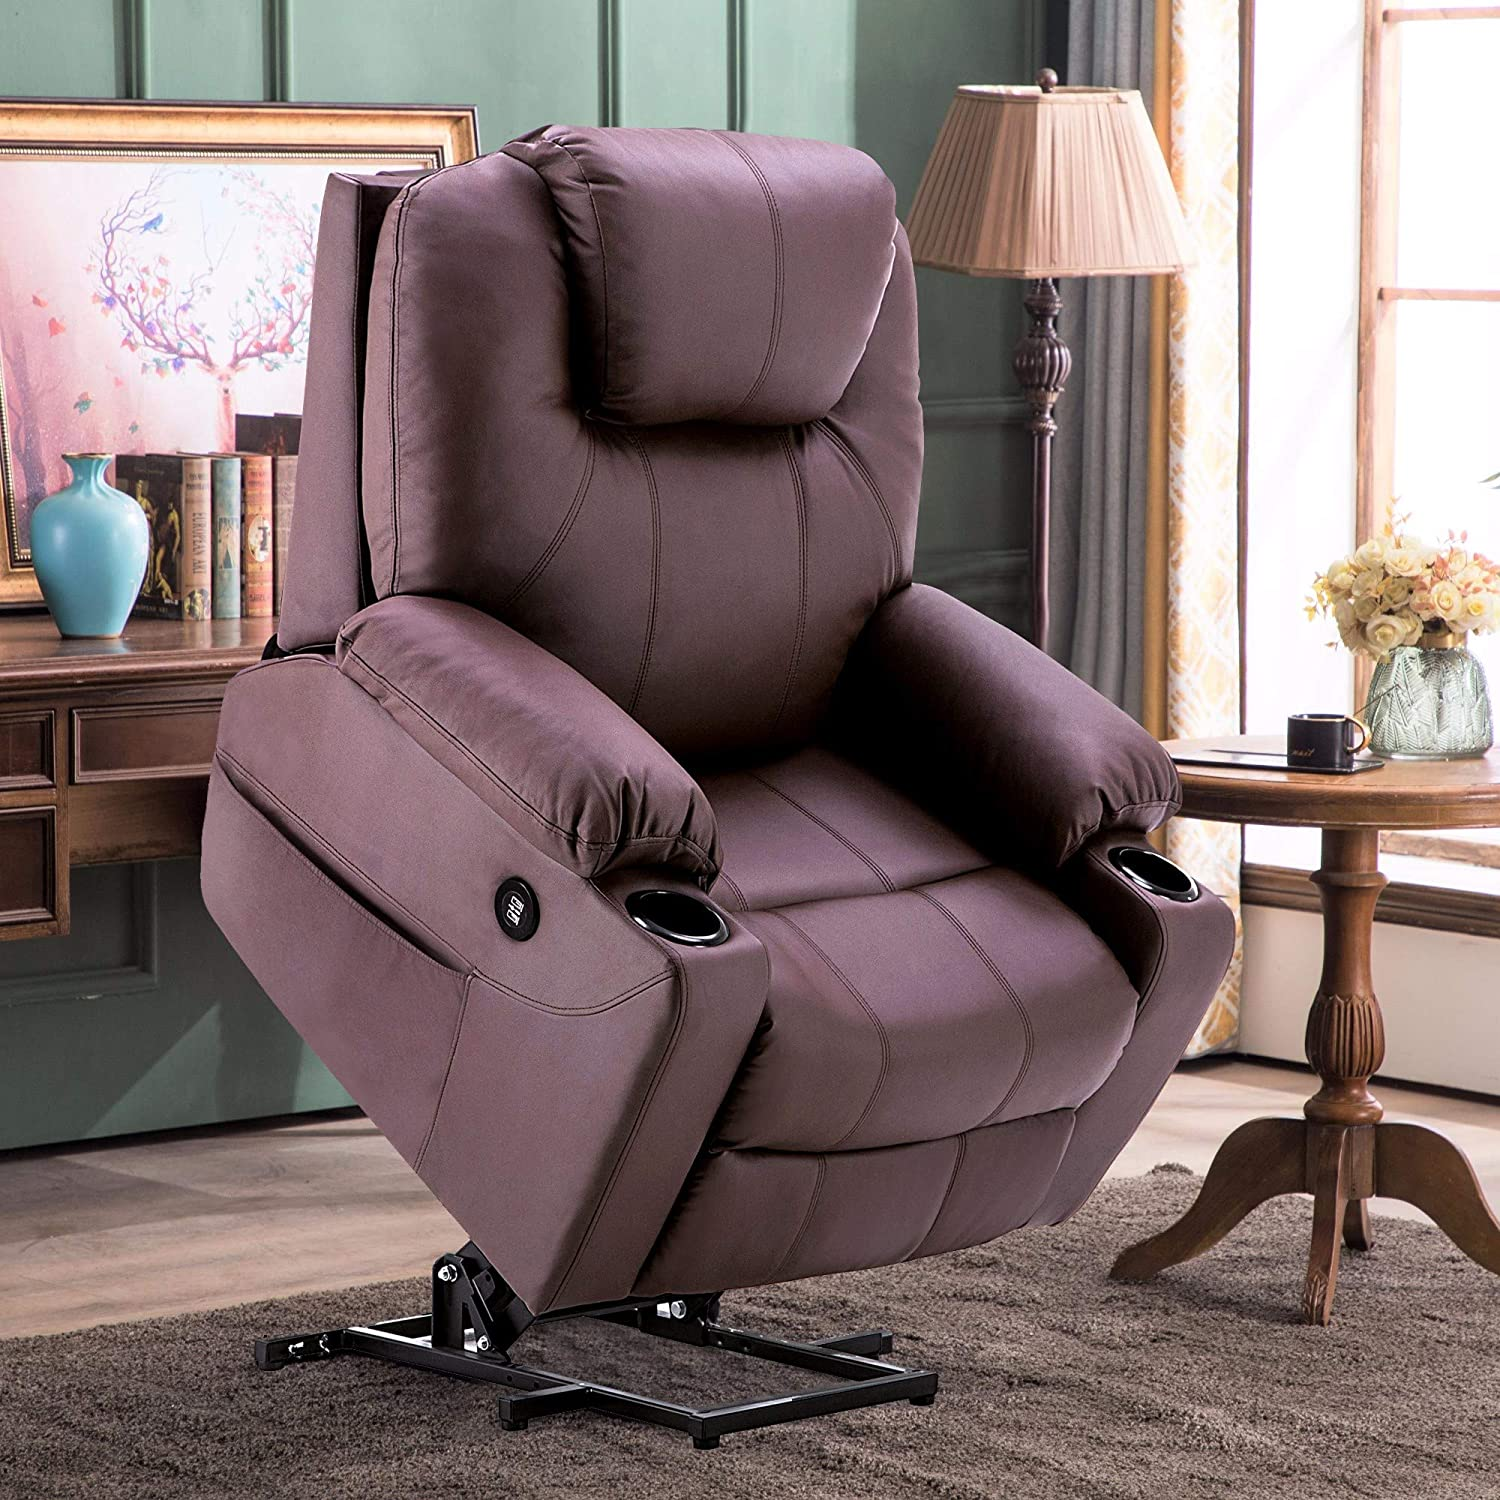 Mcombo Electric Power Lift Recliner Chair Sofa with Massage and Heat for Elderly, 3 Positions, 2 Side Pockets and Cup Holders, USB Ports, Faux Leather 7040 Light Brown